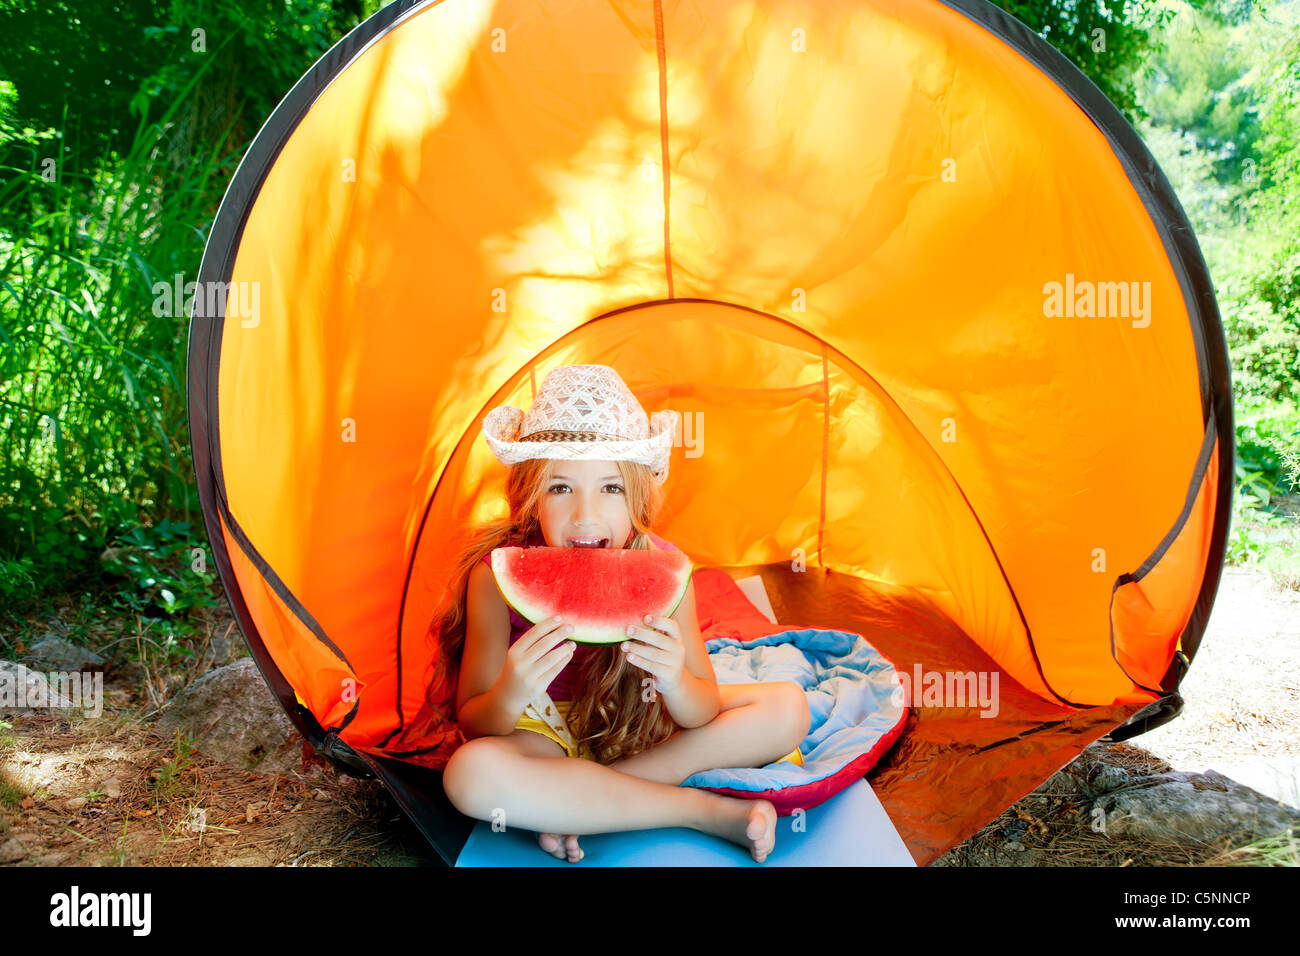 C&ing children girl in tent eating watermelon slice fruit in outdoor forest & Camping children girl in tent eating watermelon slice fruit in ...